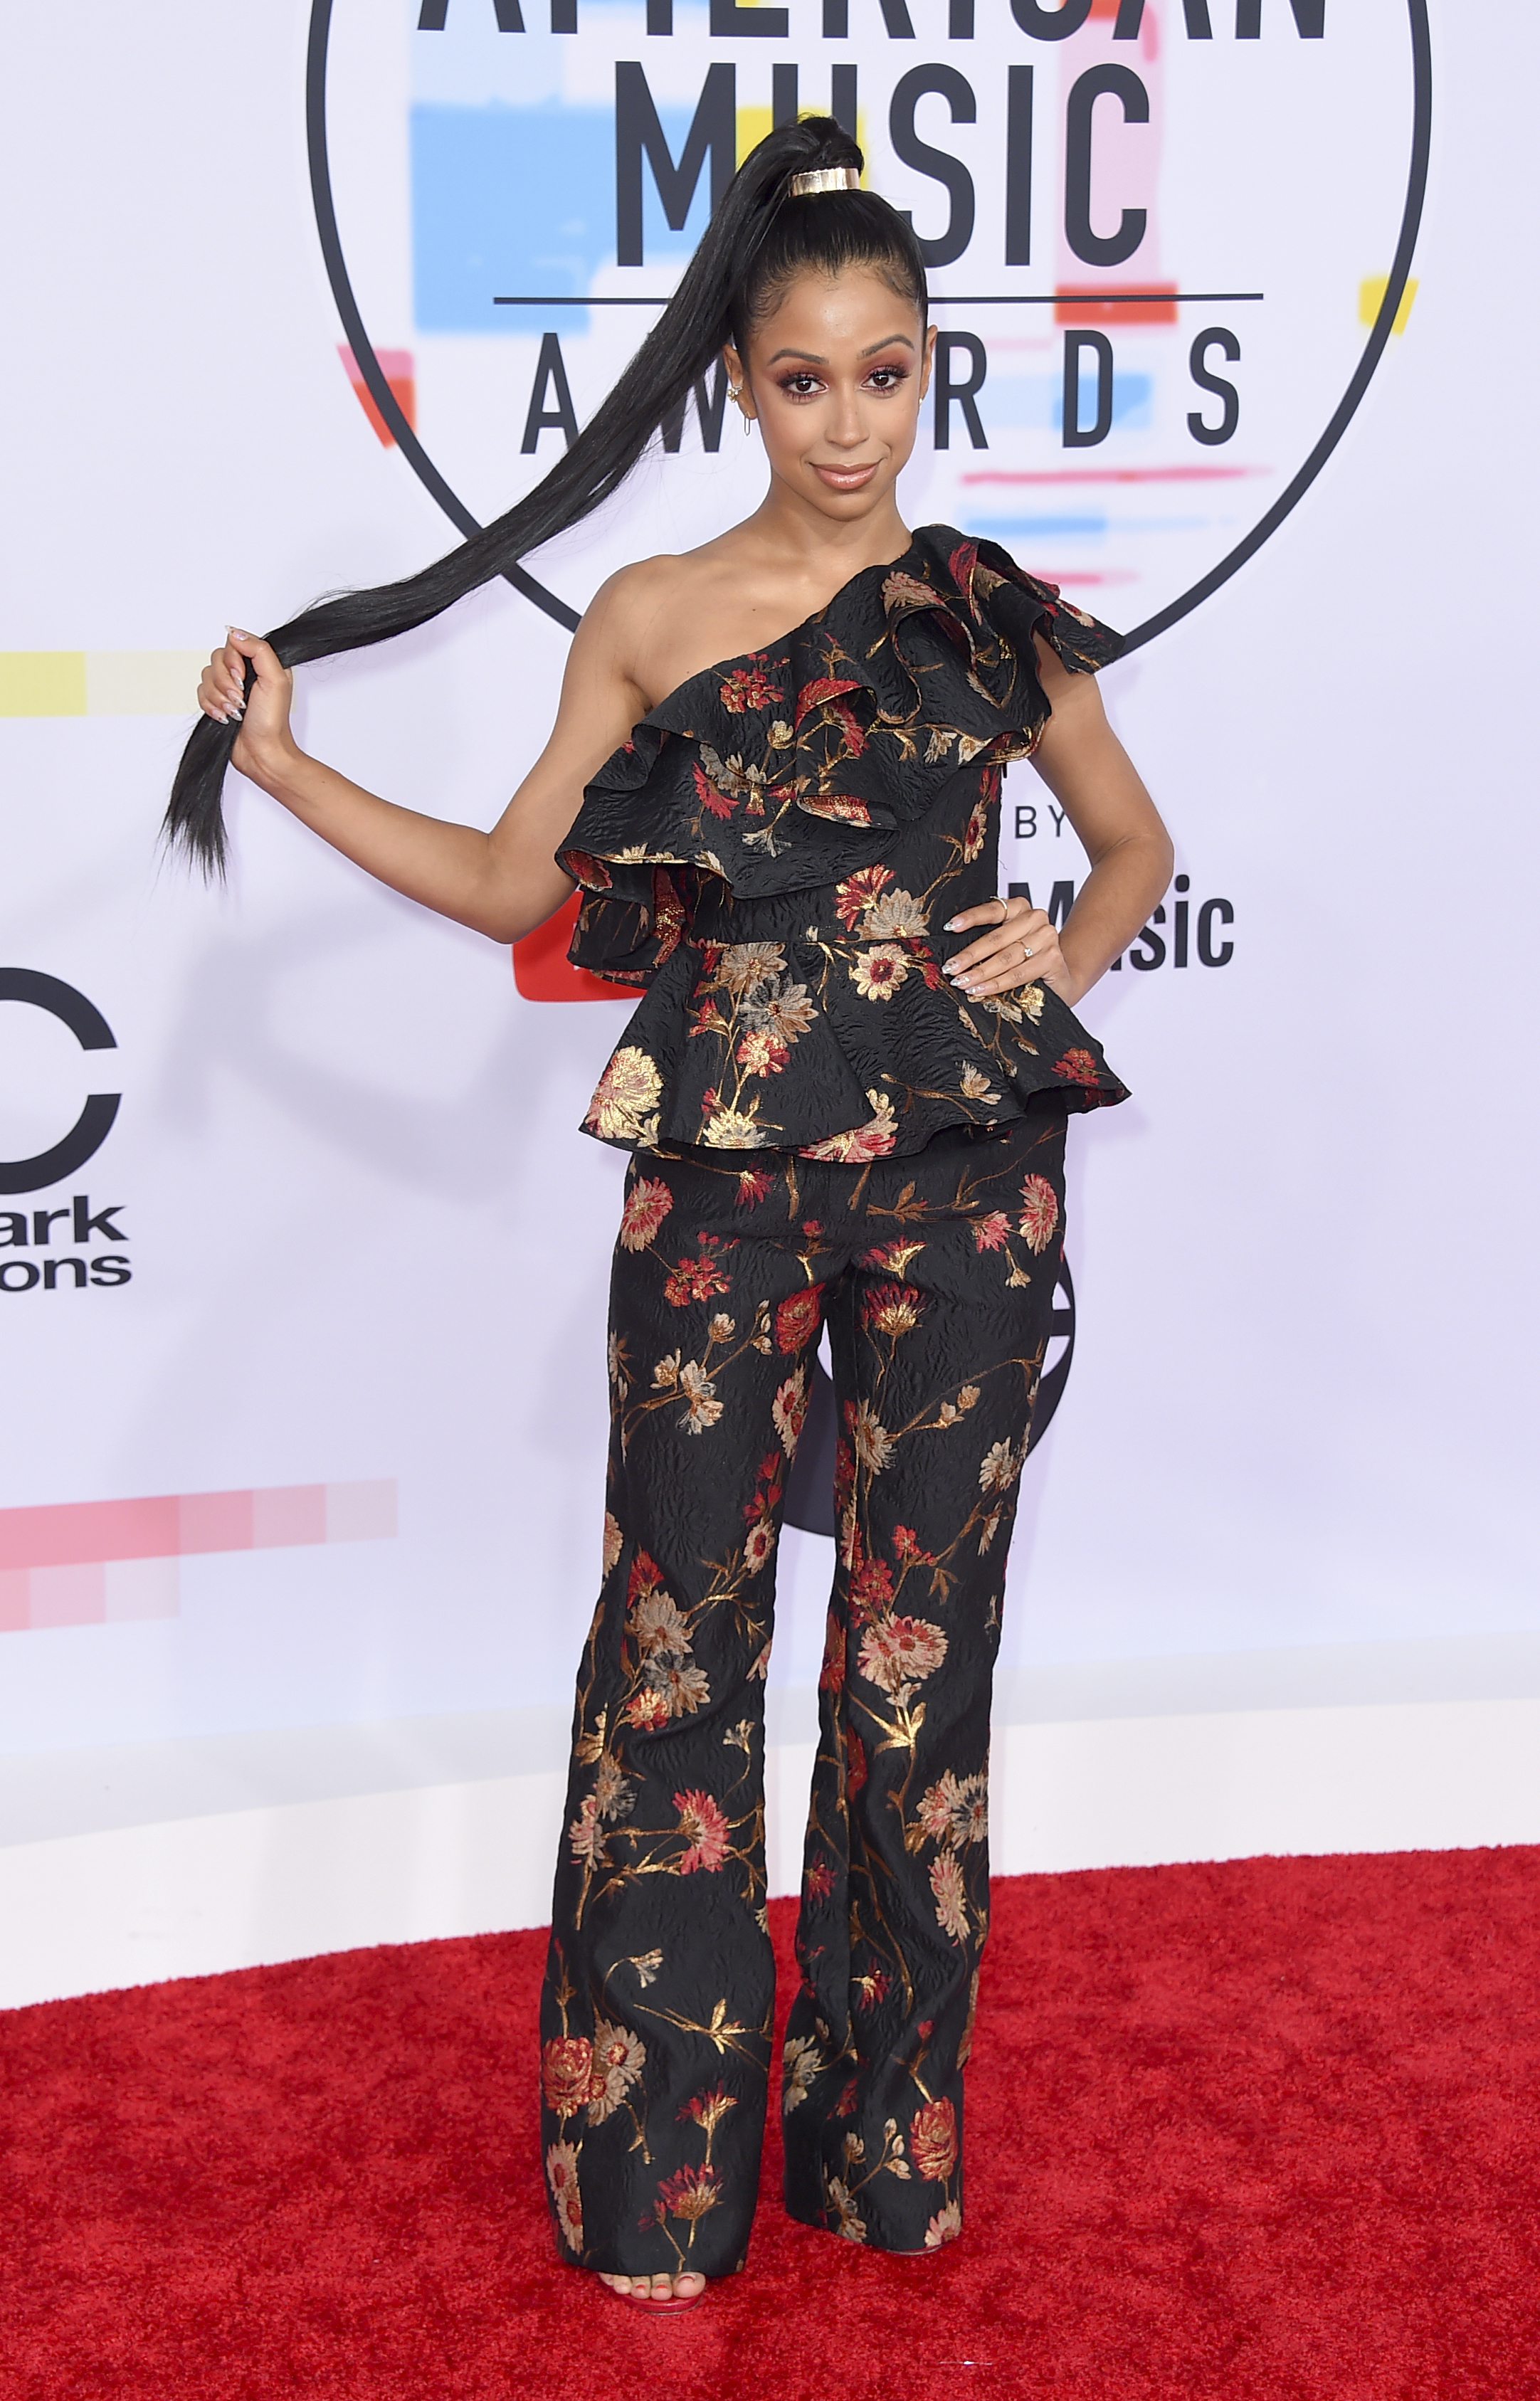 "<div class=""meta image-caption""><div class=""origin-logo origin-image none""><span>none</span></div><span class=""caption-text"">Liza Koshy arrives at the American Music Awards on Tuesday, Oct. 9, 2018, at the Microsoft Theater in Los Angeles. (Photo by Jordan Strauss/Invision/AP) (Jordan Strauss/Invision/AP)</span></div>"